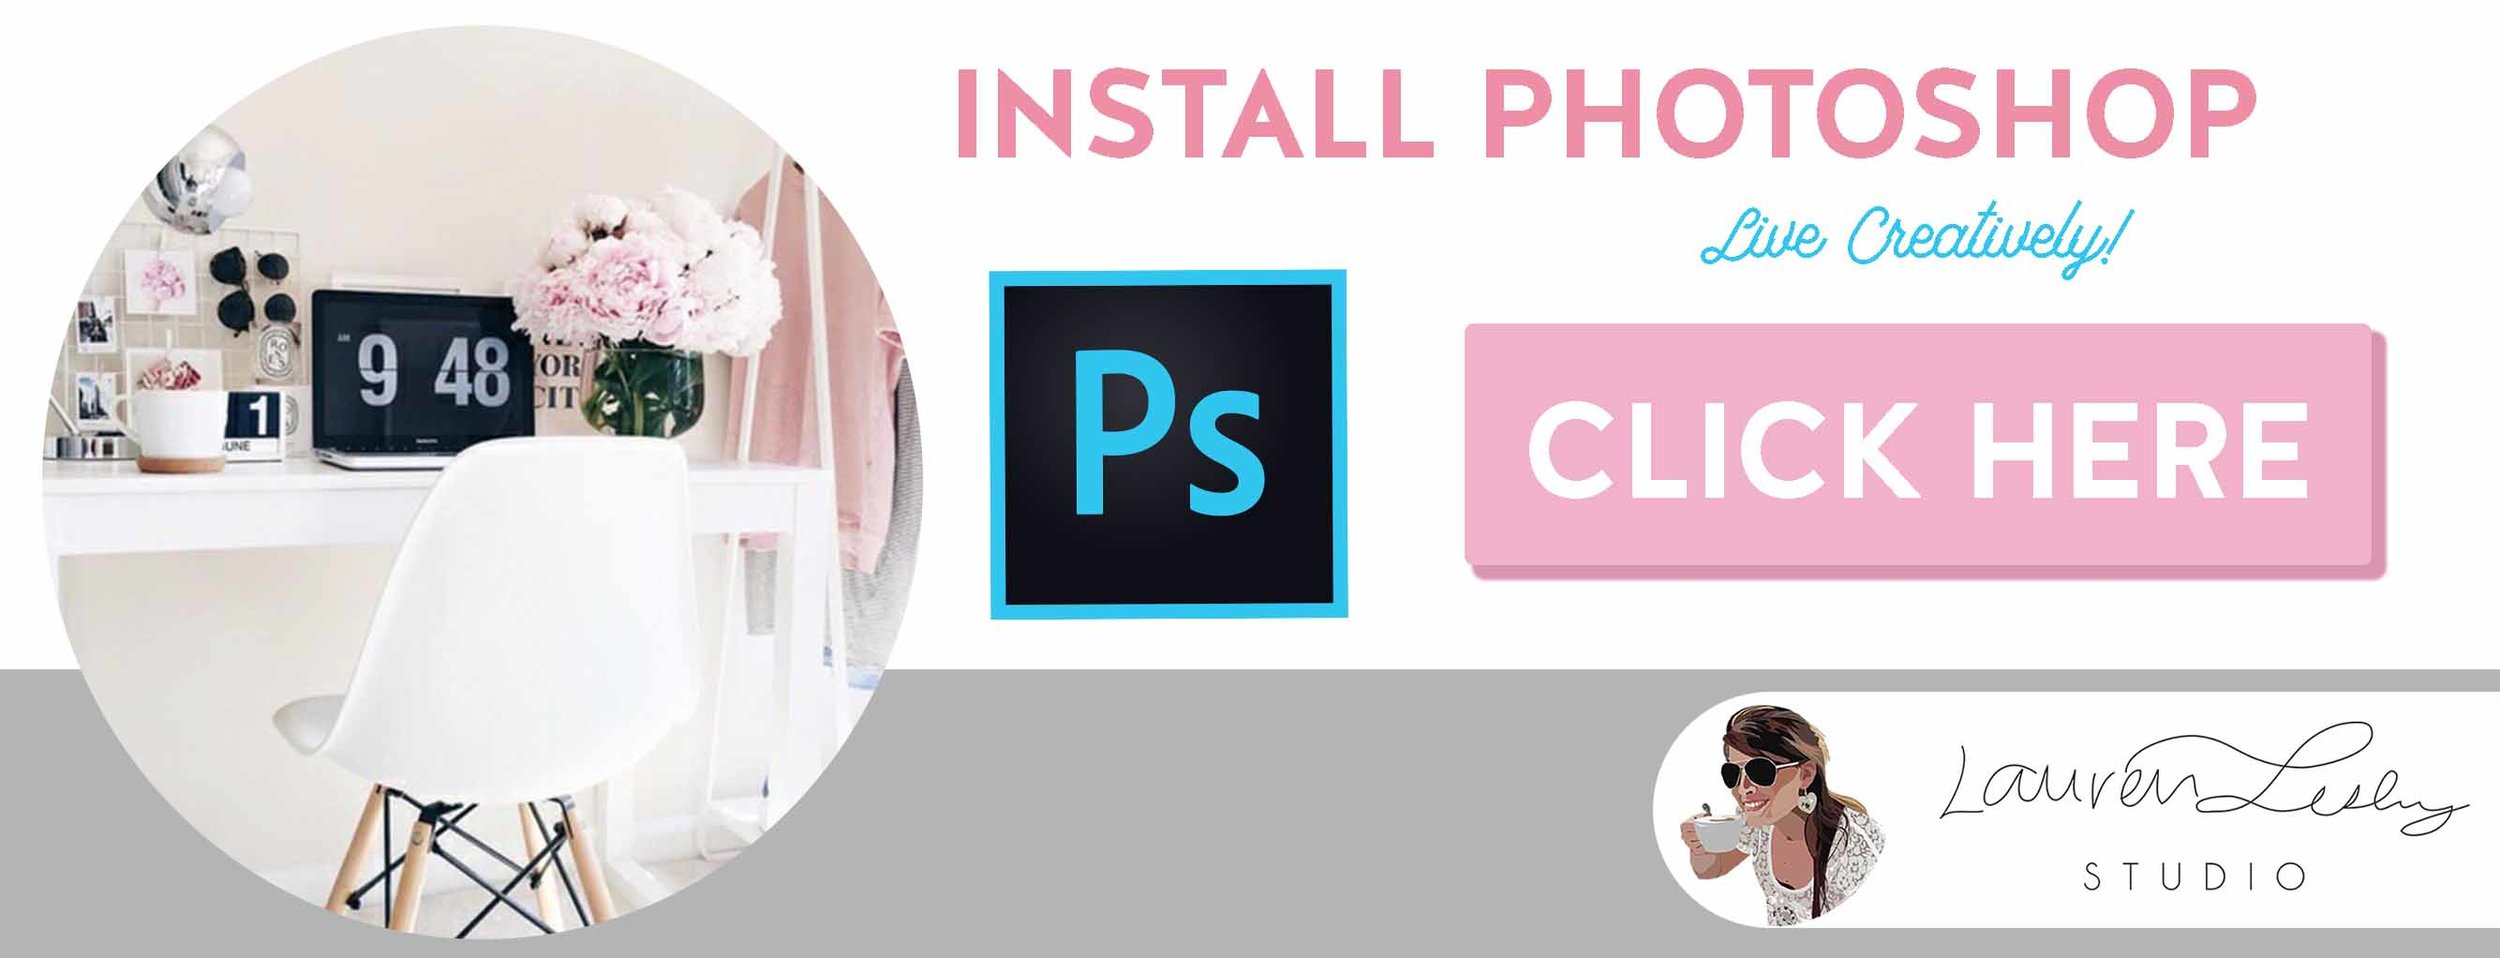 Install PhotoShop